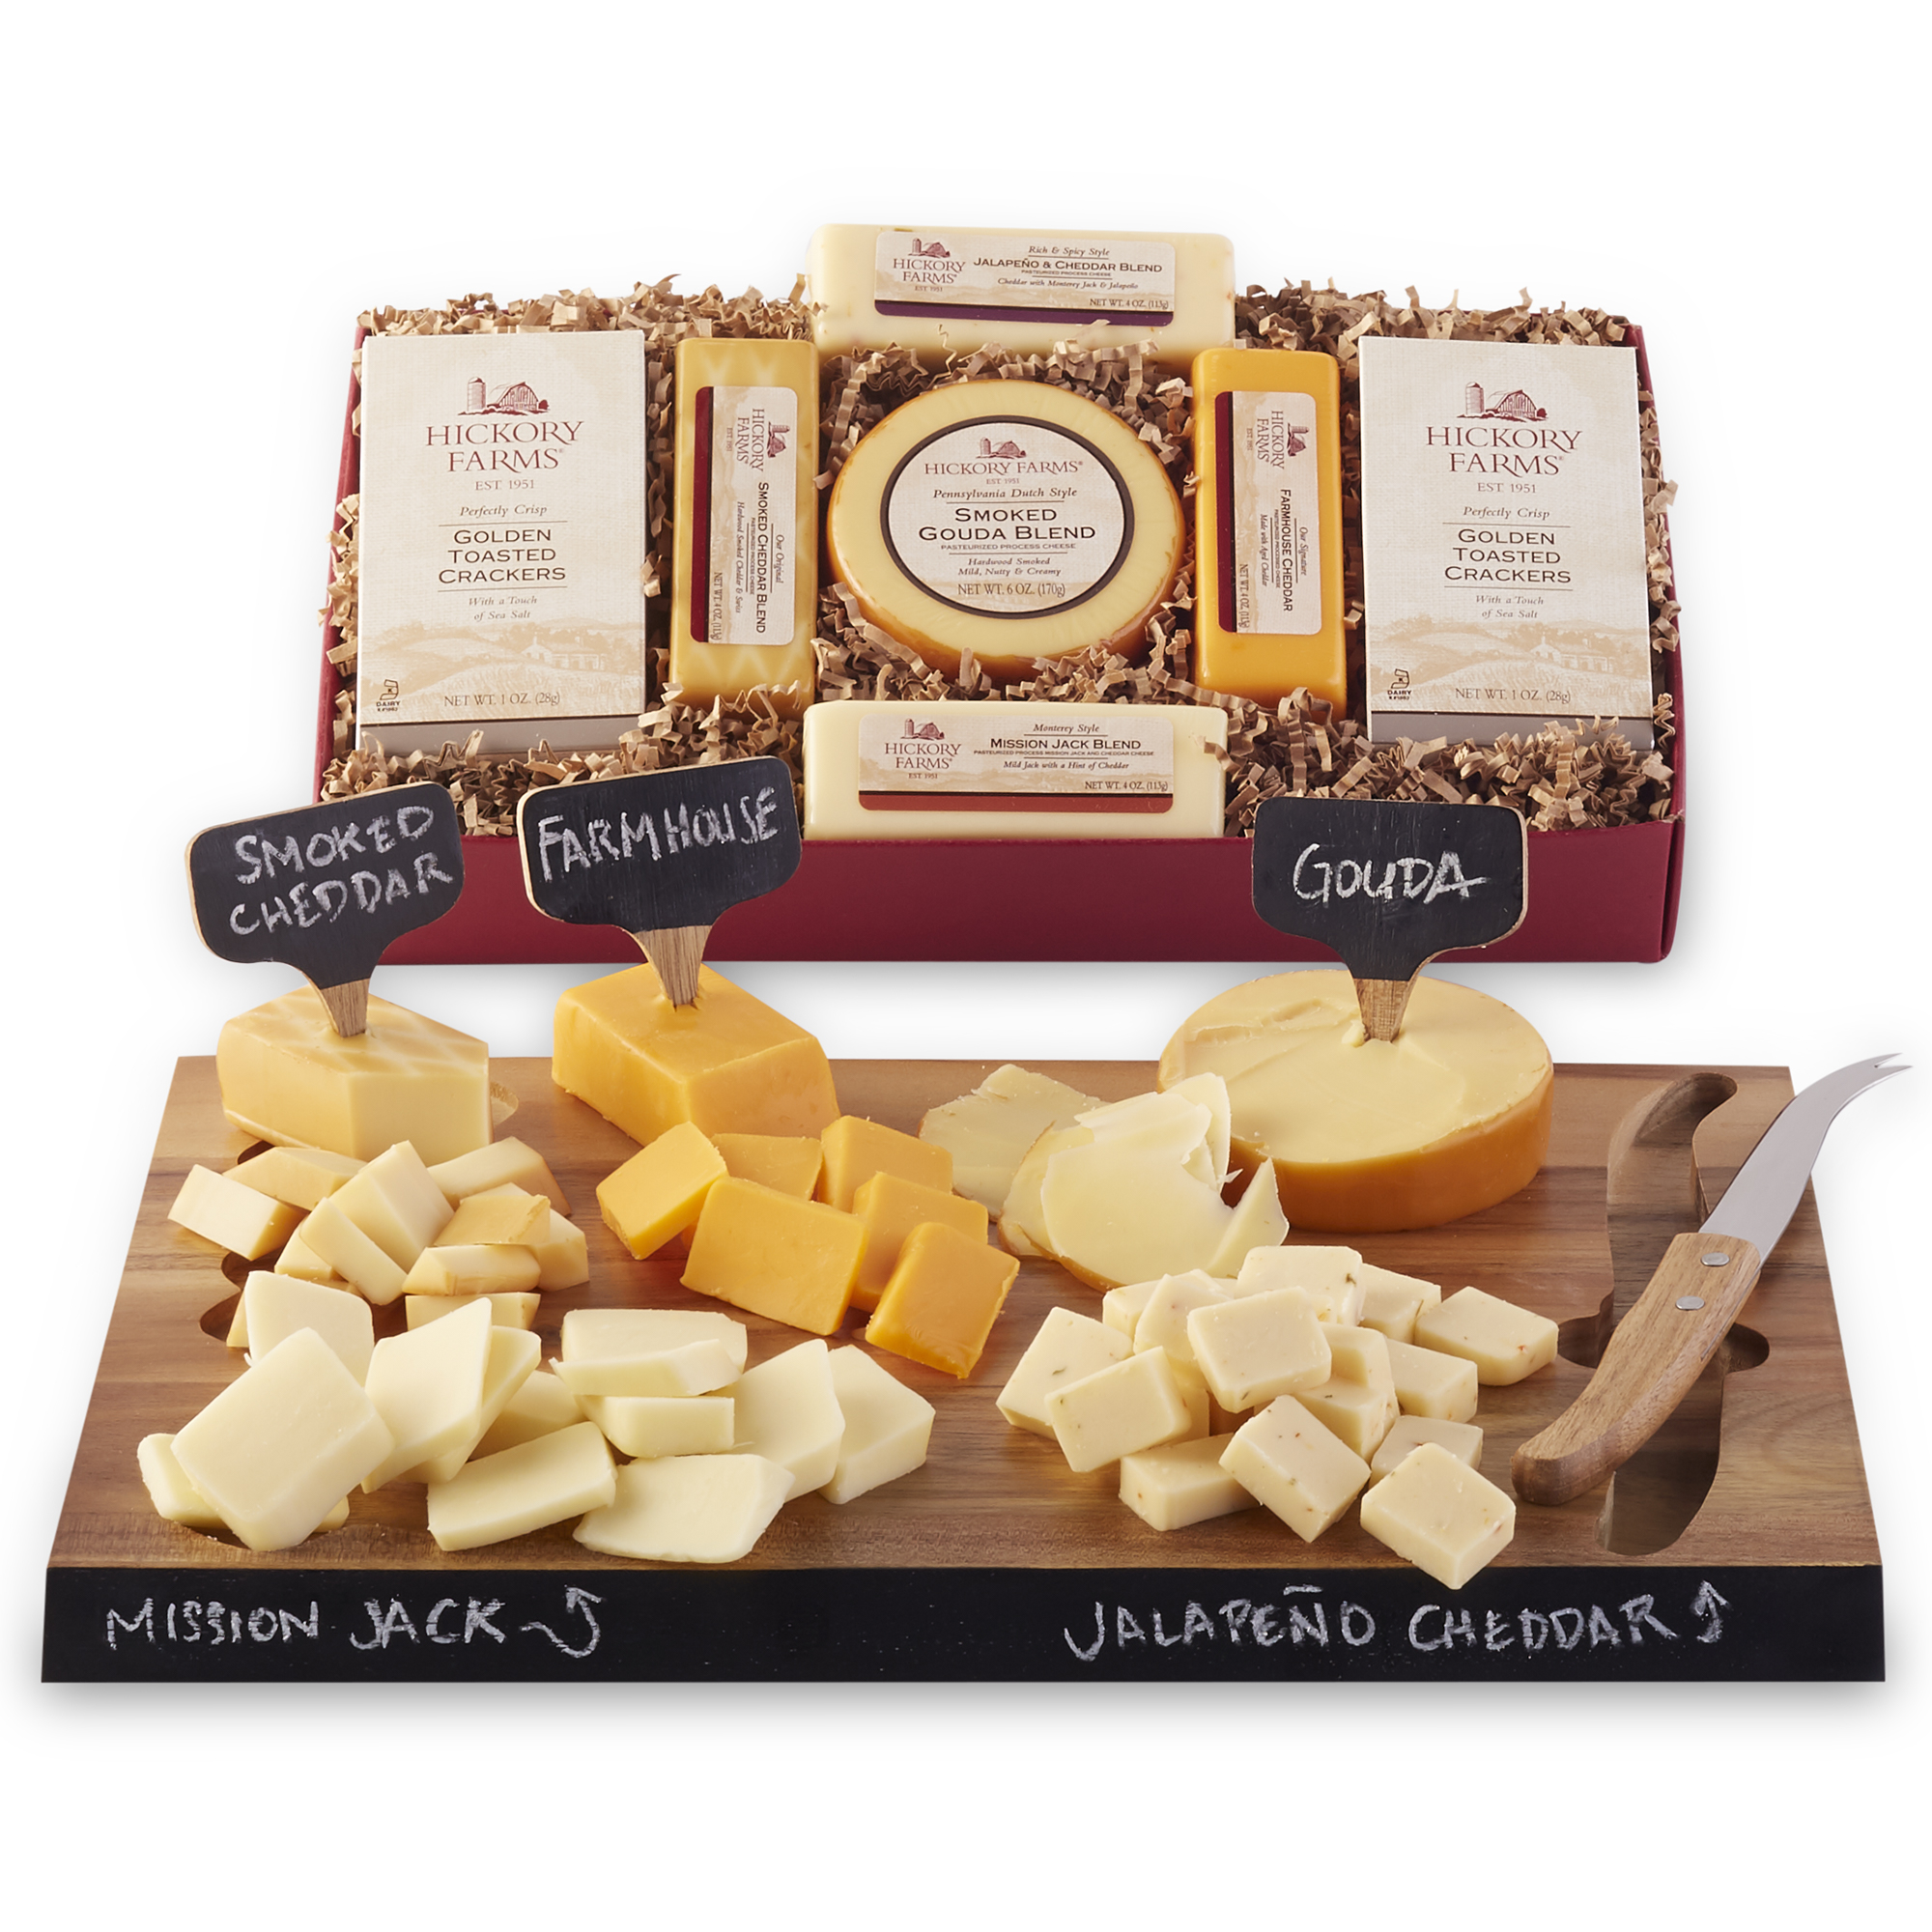 Party set includes a variety of cheeses and an acacia wood serving set kit